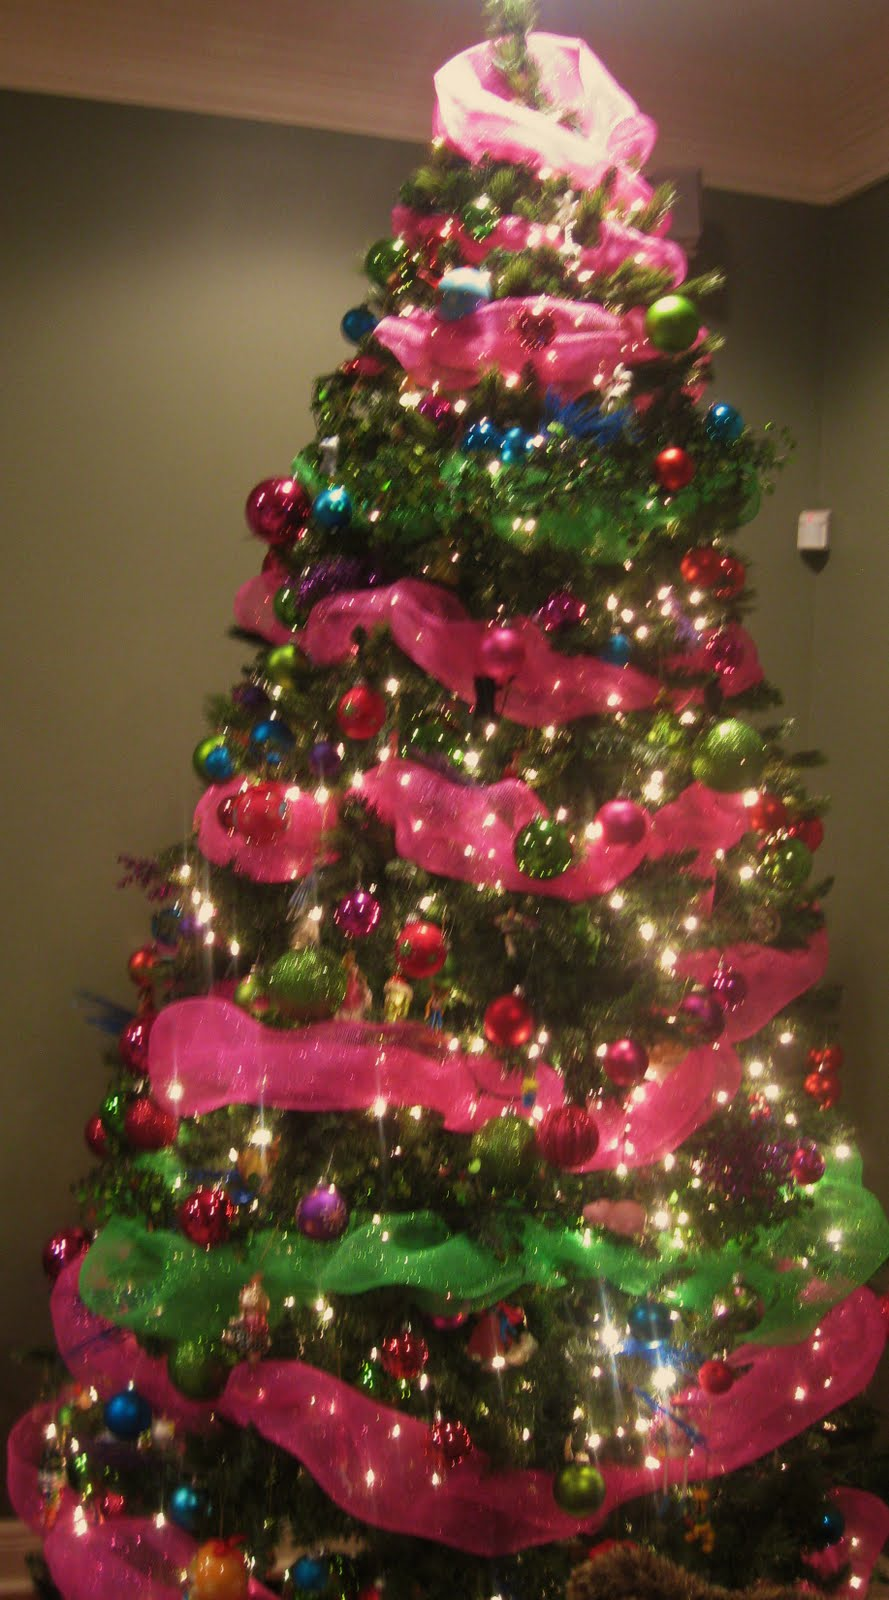 pink and green christmas tree decorations merry christmas - Merry Christmas Decorations